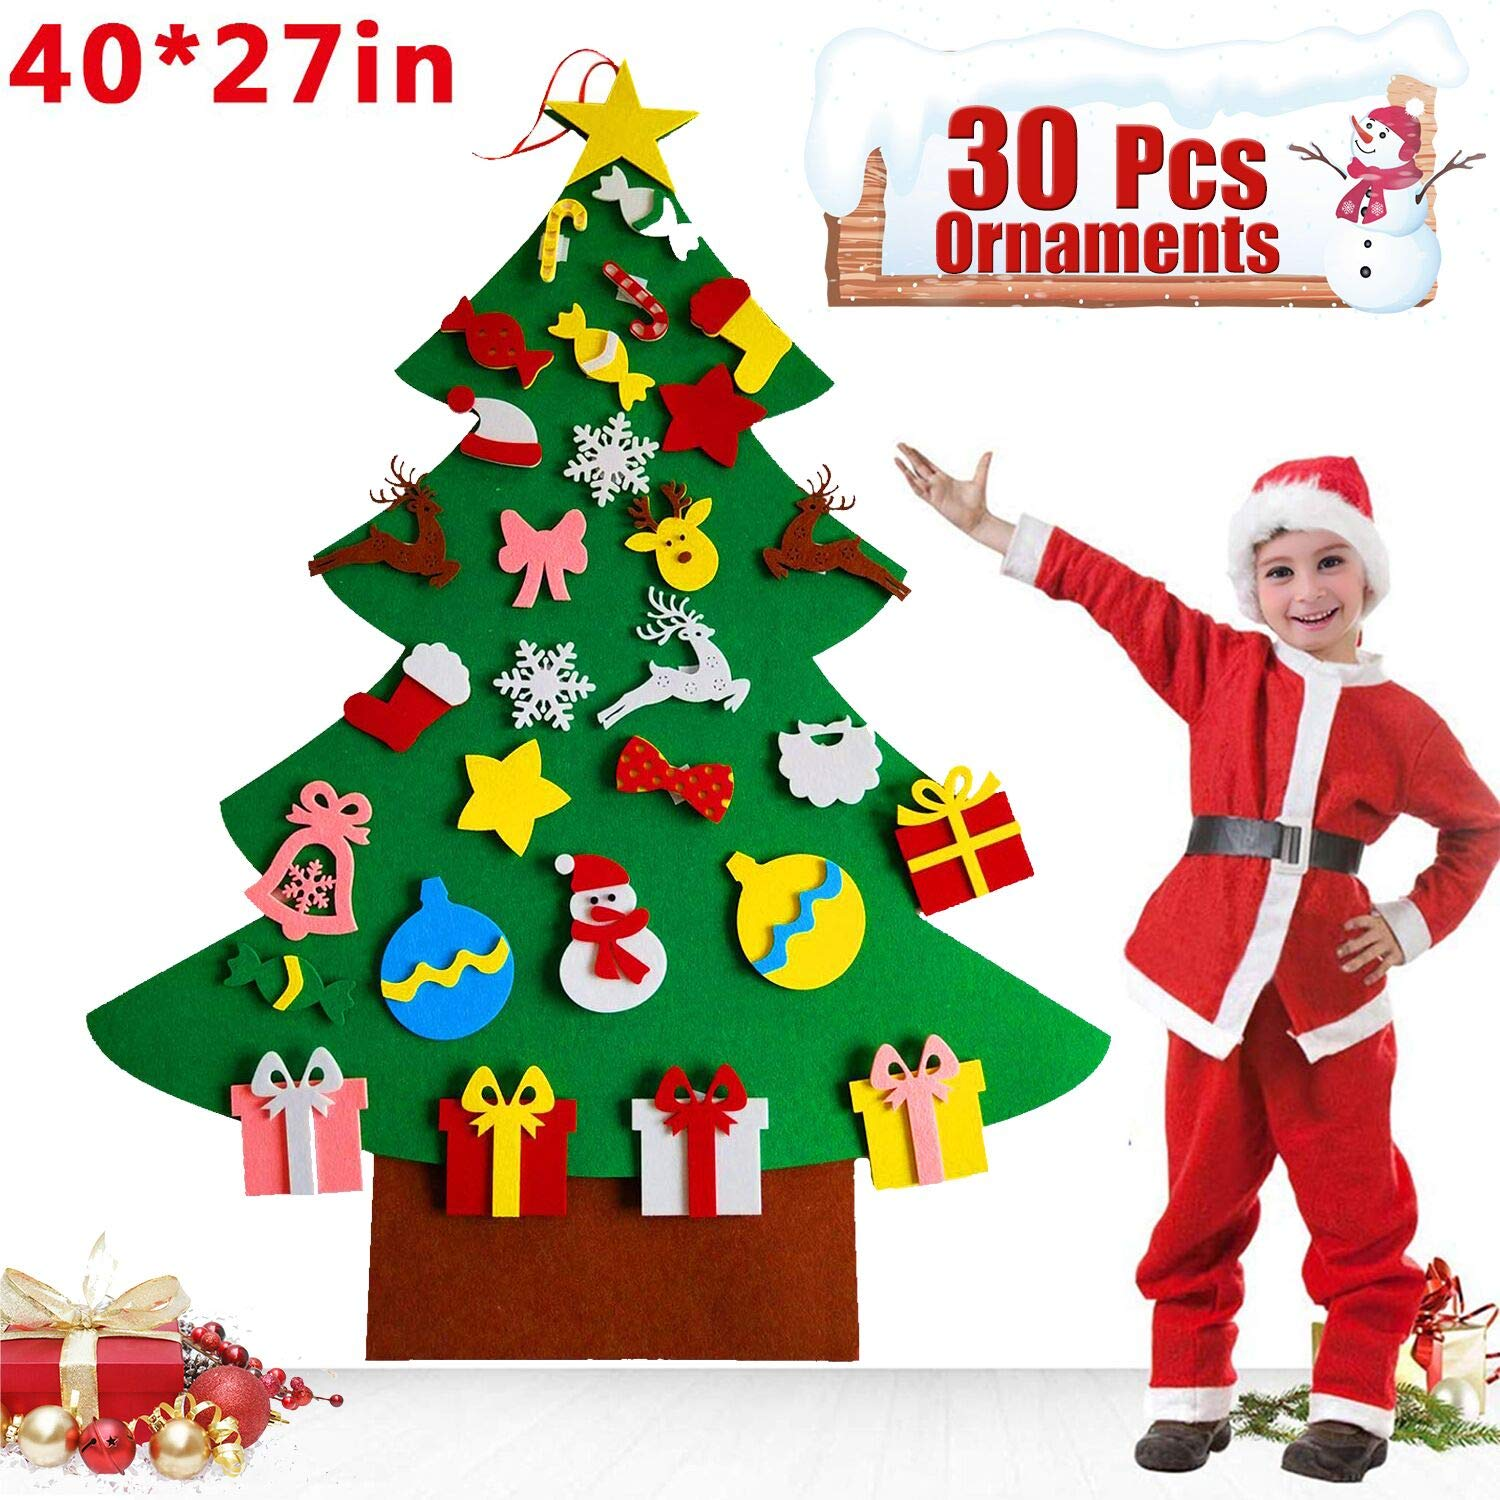 Felt Christmas Tree Set for Kids Toddlers 30pcs Ornaments 3.2ft DIY Christmas Tree Kids Xmas New Year Gifts Xmas Detachable Home Door Wall Hanging Ornaments Christmas Decorations